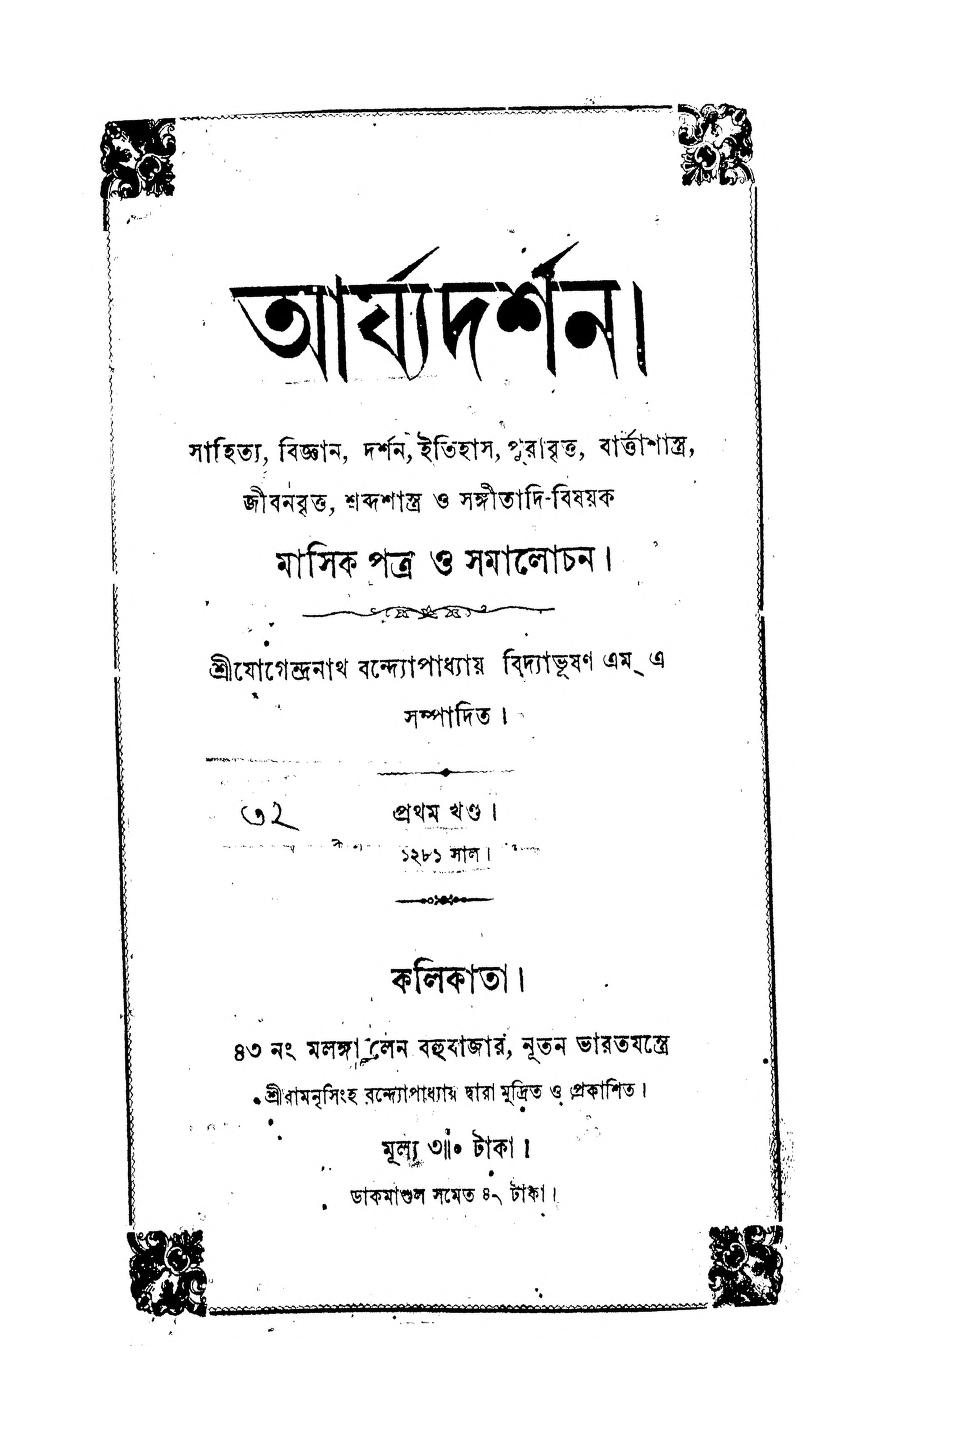 Book Image : আর্য্যদর্শন [খণ্ড-১] - Arjyadarshan [Vol.1]